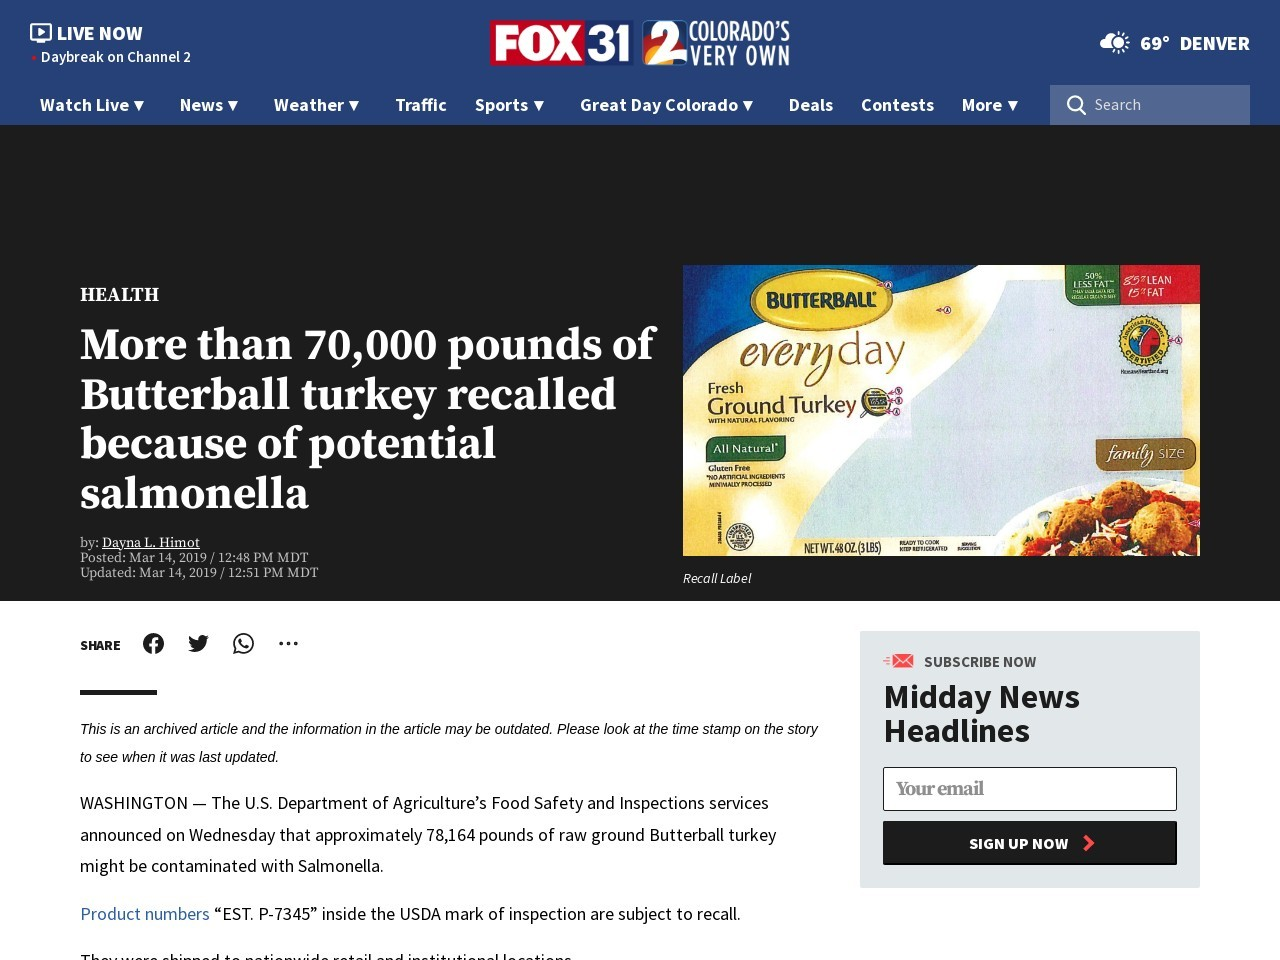 More than 70,000 pounds of Butterball turkey recalled because of potential salmonella